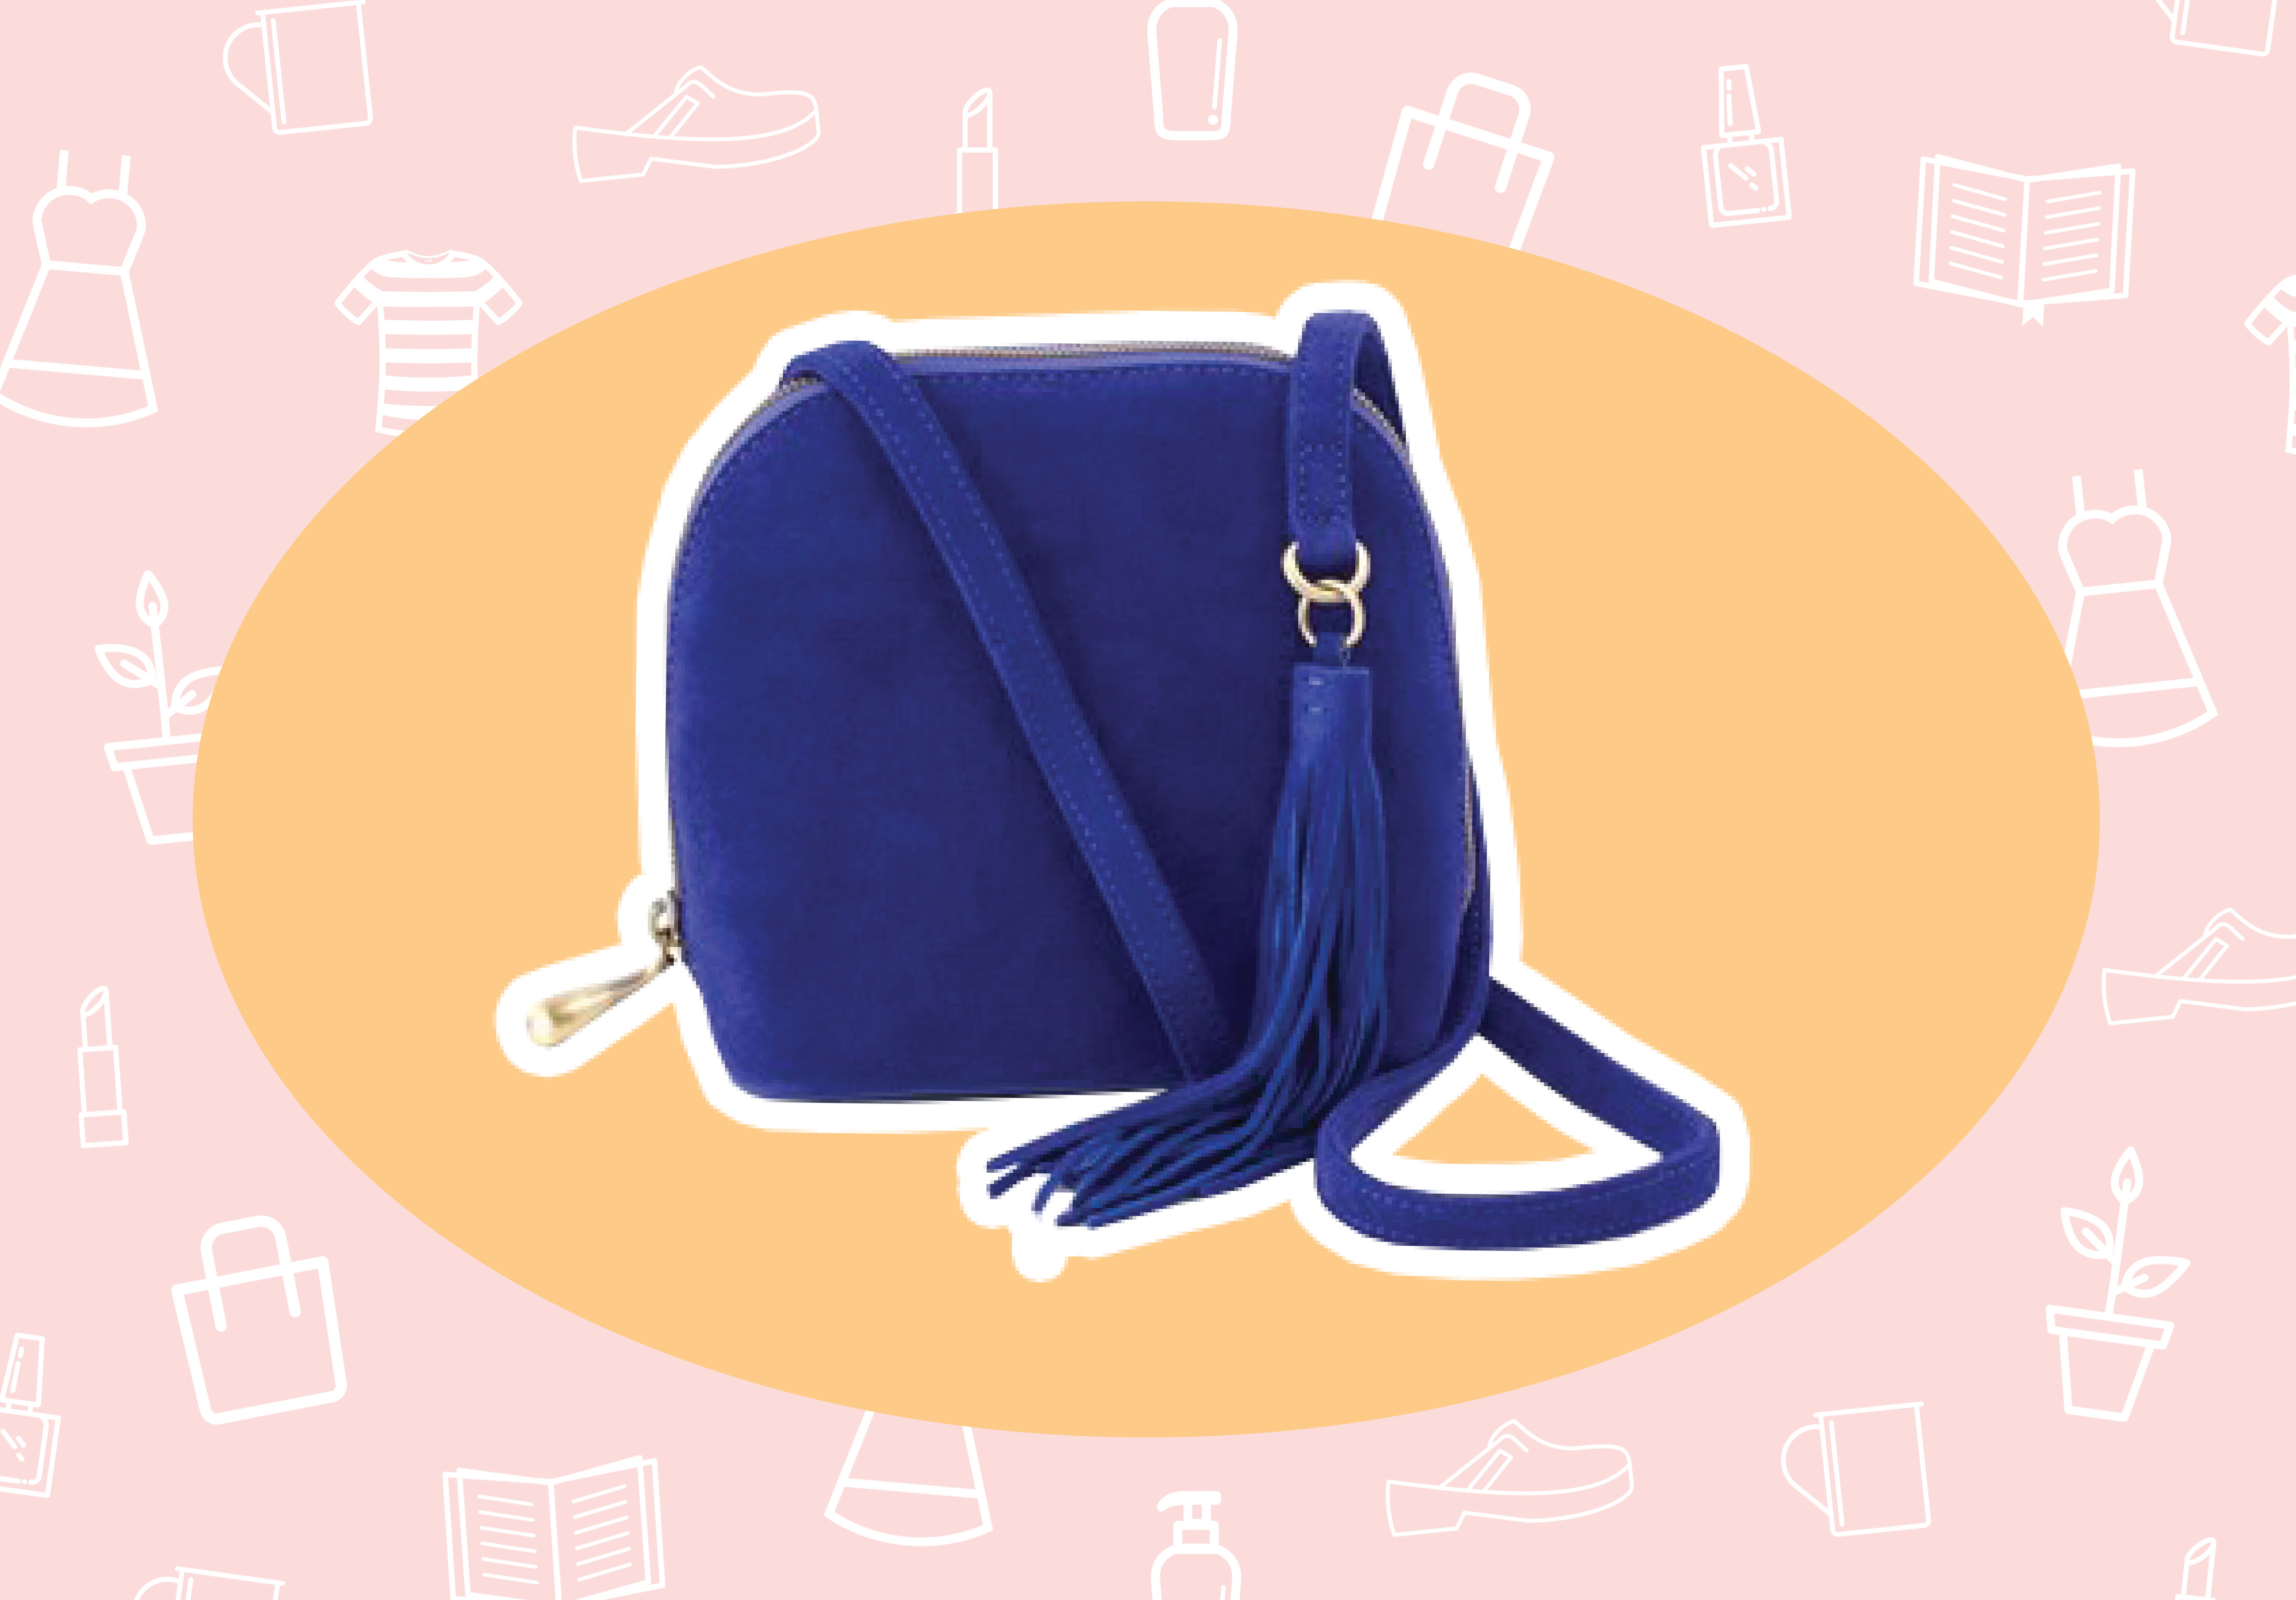 WANT/NEED: A cobalt blue bag to add a pop of color to your winter uniform, and more stuff you want to buy